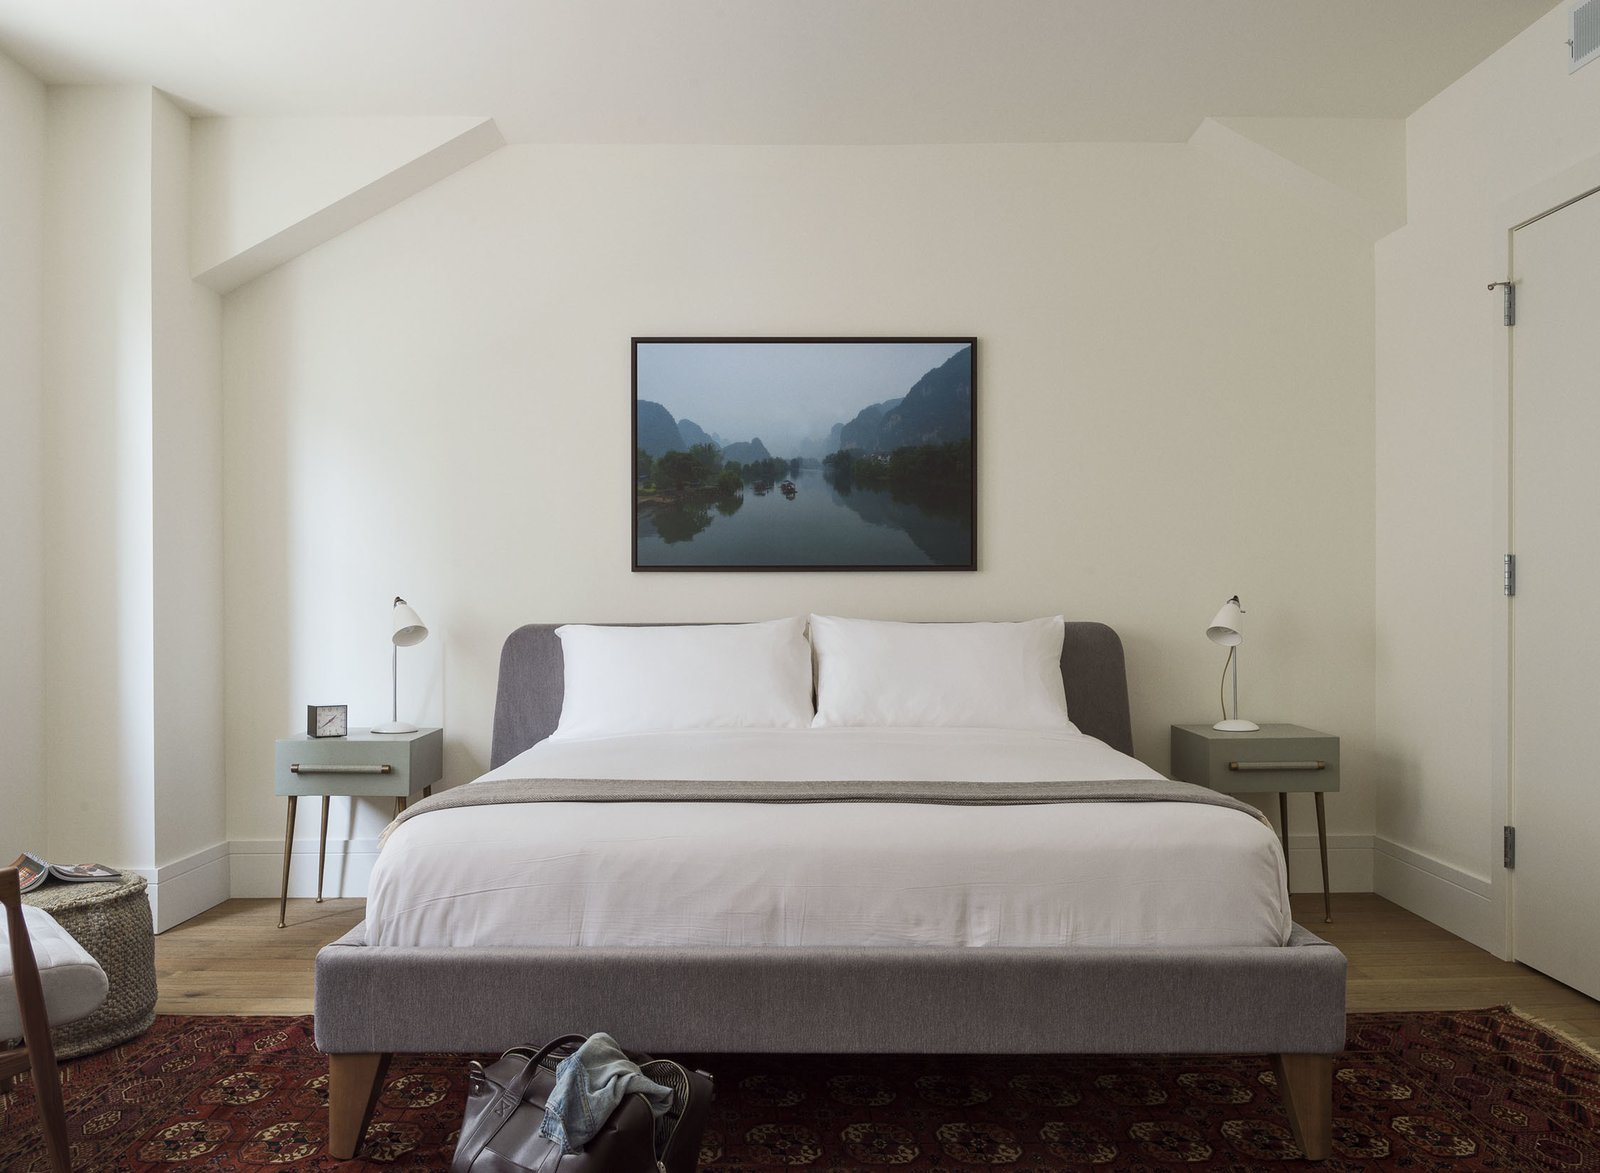 The custom artwork is from LUMAS and the bedside tables are Chelsea Textile. The apartments also contain Bosch washers and dryers.